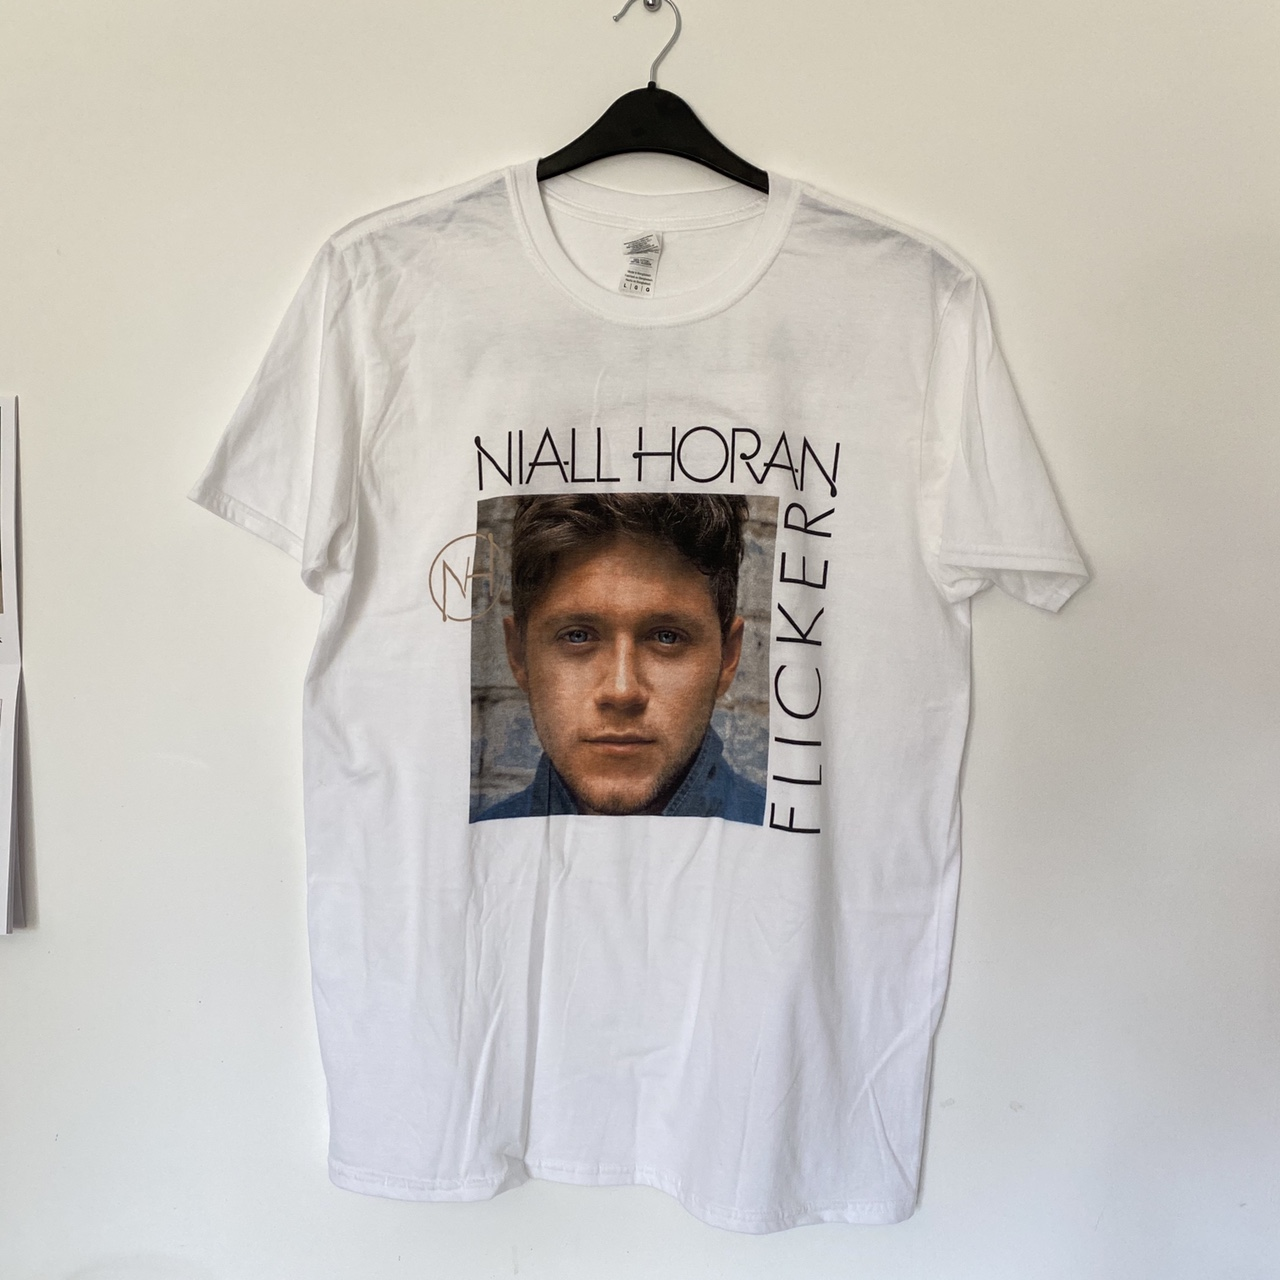 Niall Horan Flicker World Tour 2018 T Shirt Depop